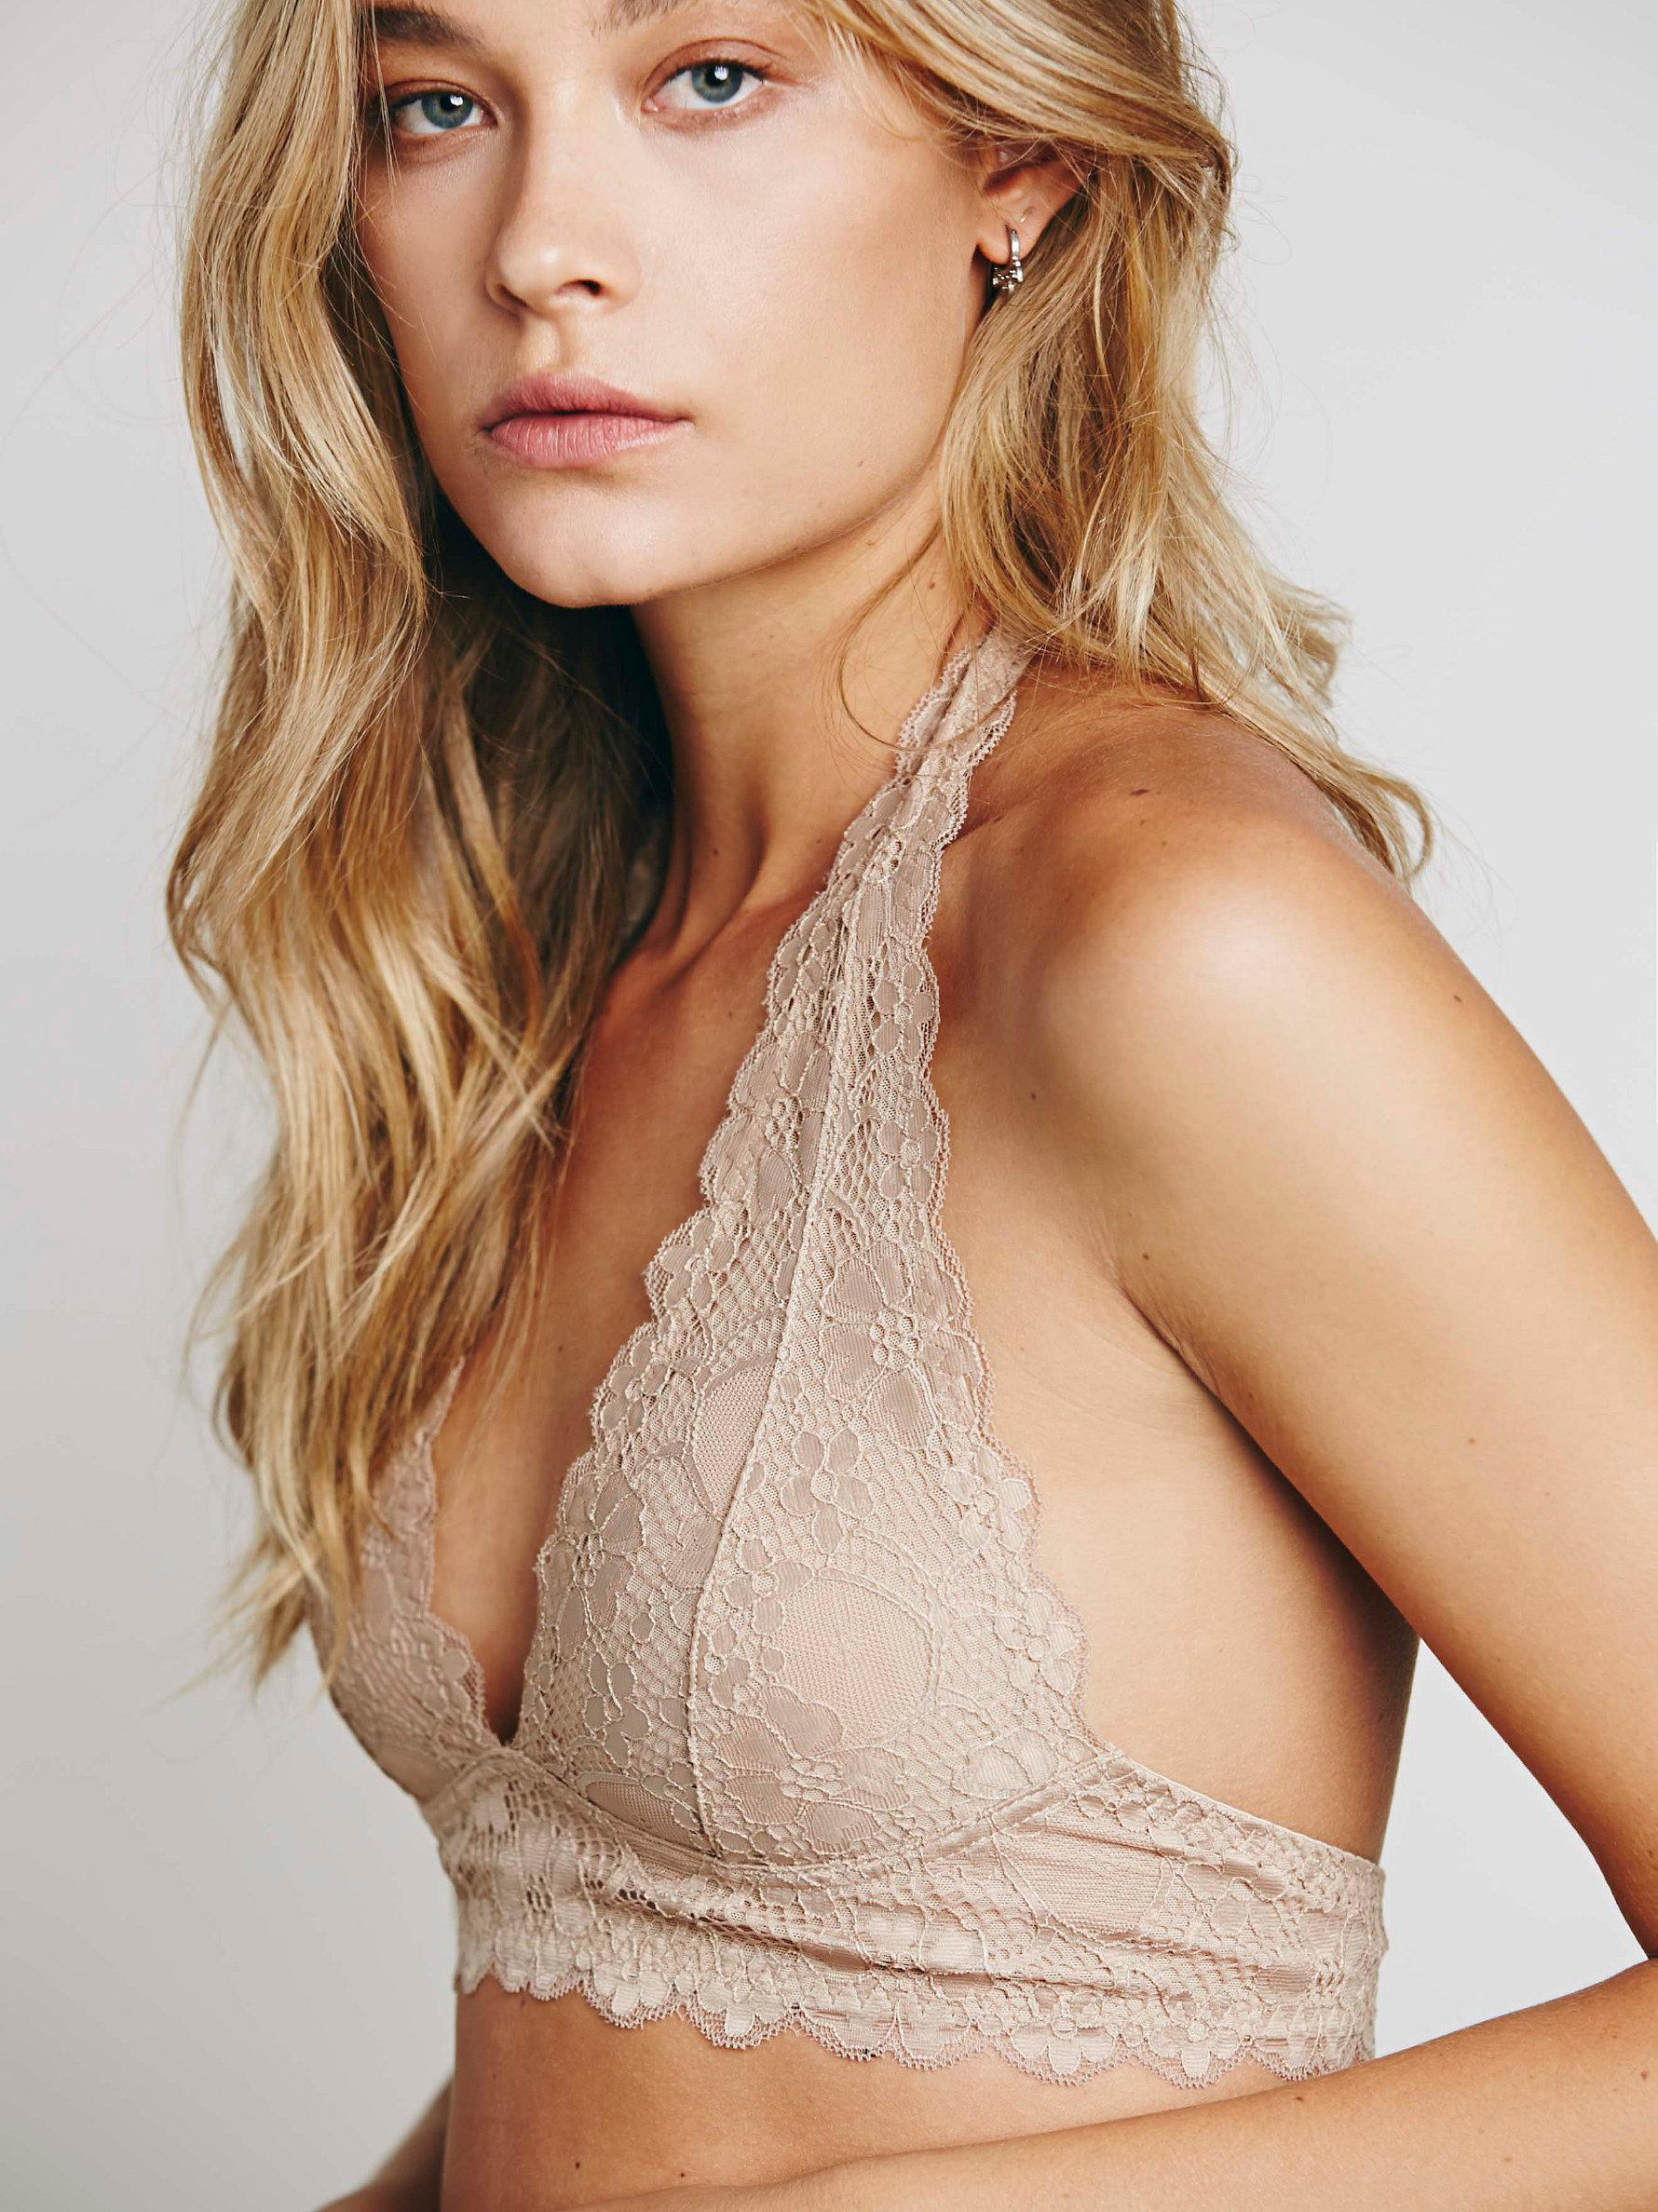 75fd3e2500a7b Free People Galloon Lace Halter Bra in Natural - Lyst